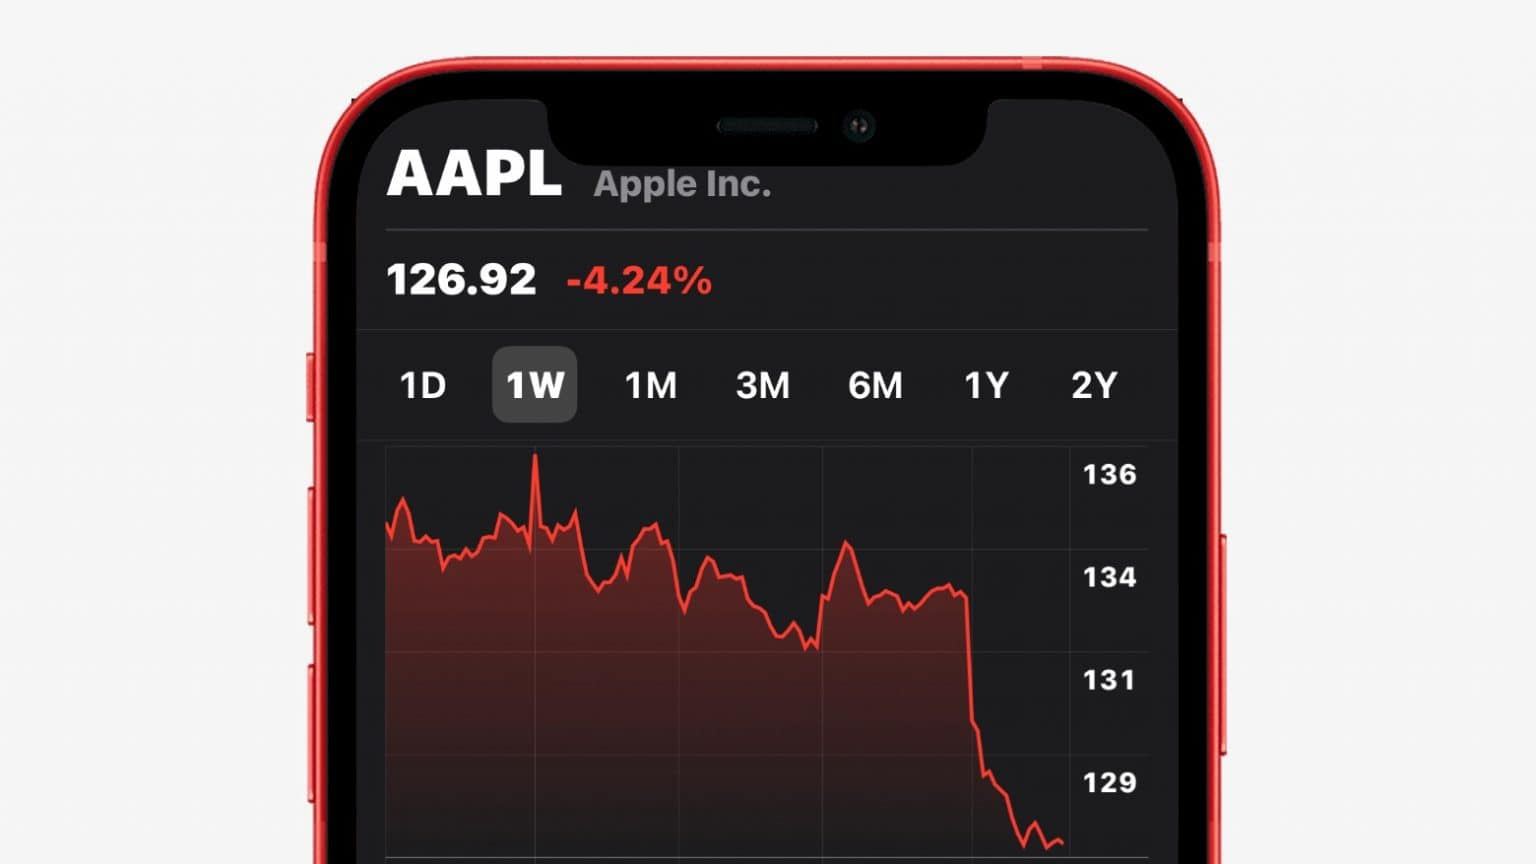 AAPL shares took a nosedive on Tuesday